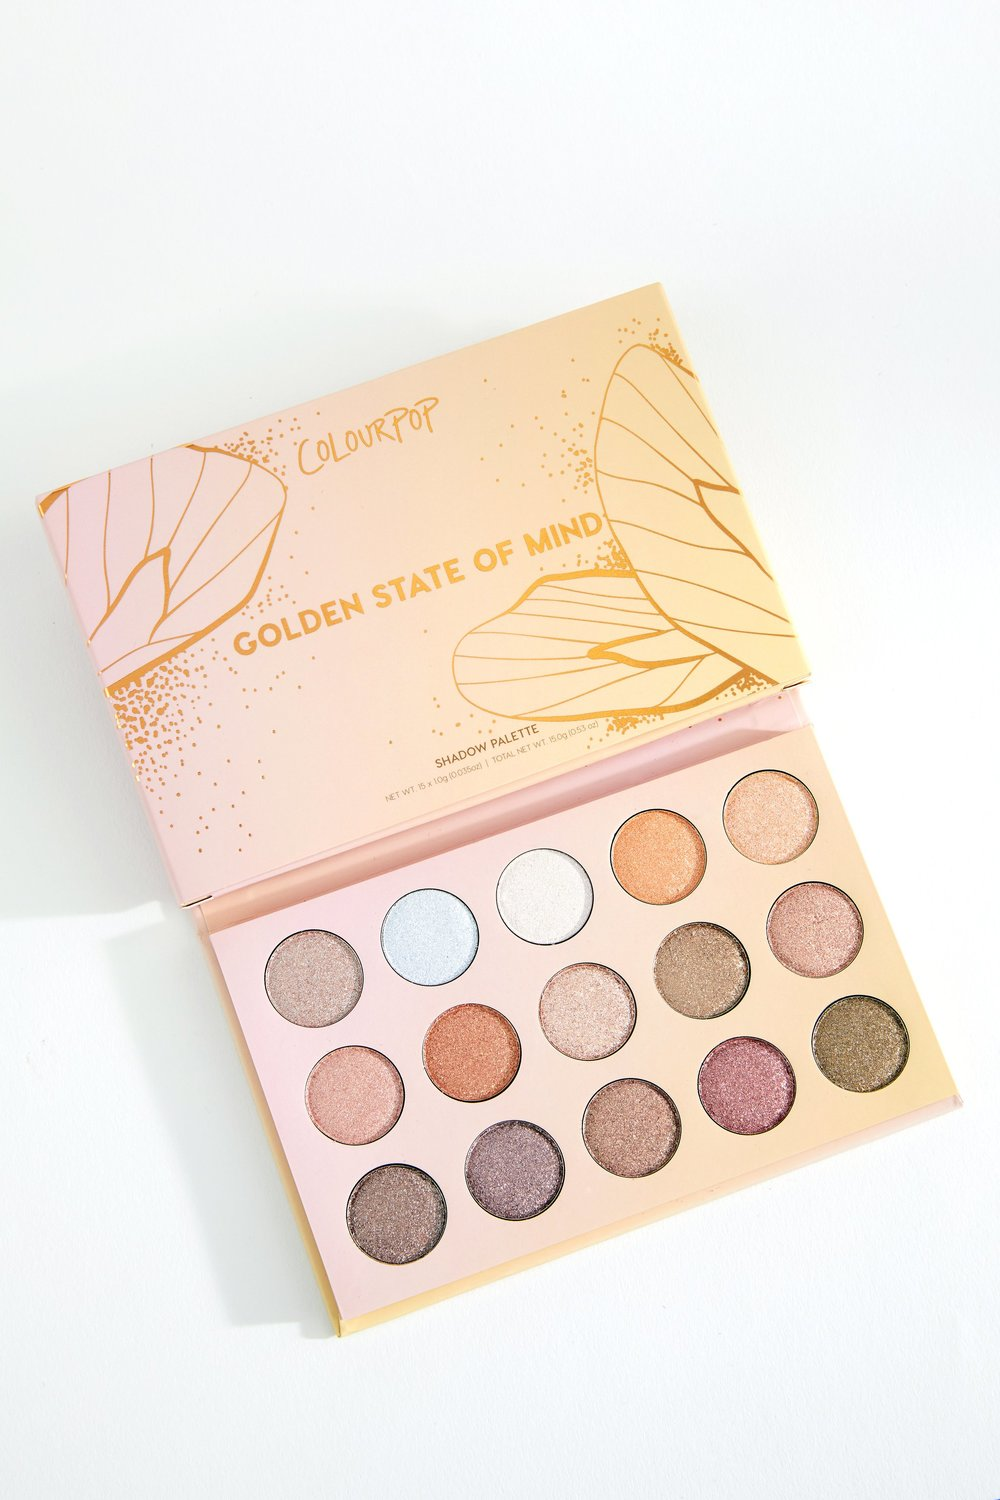 tmp_wXVHKB_371c369988613609_ColourPop_x_Sephora_Golden_State_Of_Mind_Palette_26_www.sephora.com_or_www.colourpop.com.jpg